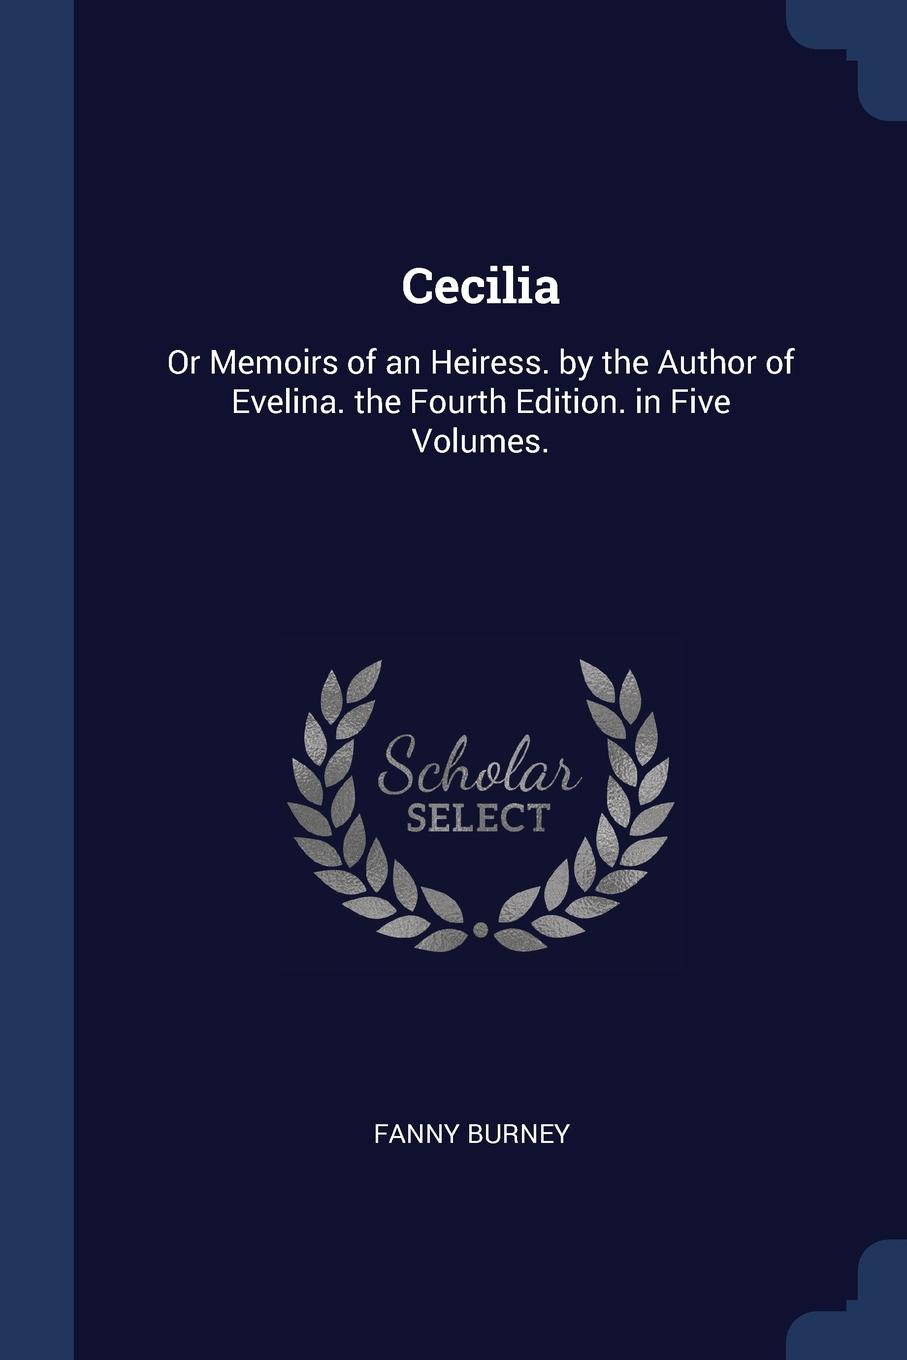 Cecilia. Or Memoirs of an Heiress. by the Author of Evelina. the Fourth Edition. in Five Volumes.. Fanny Burney